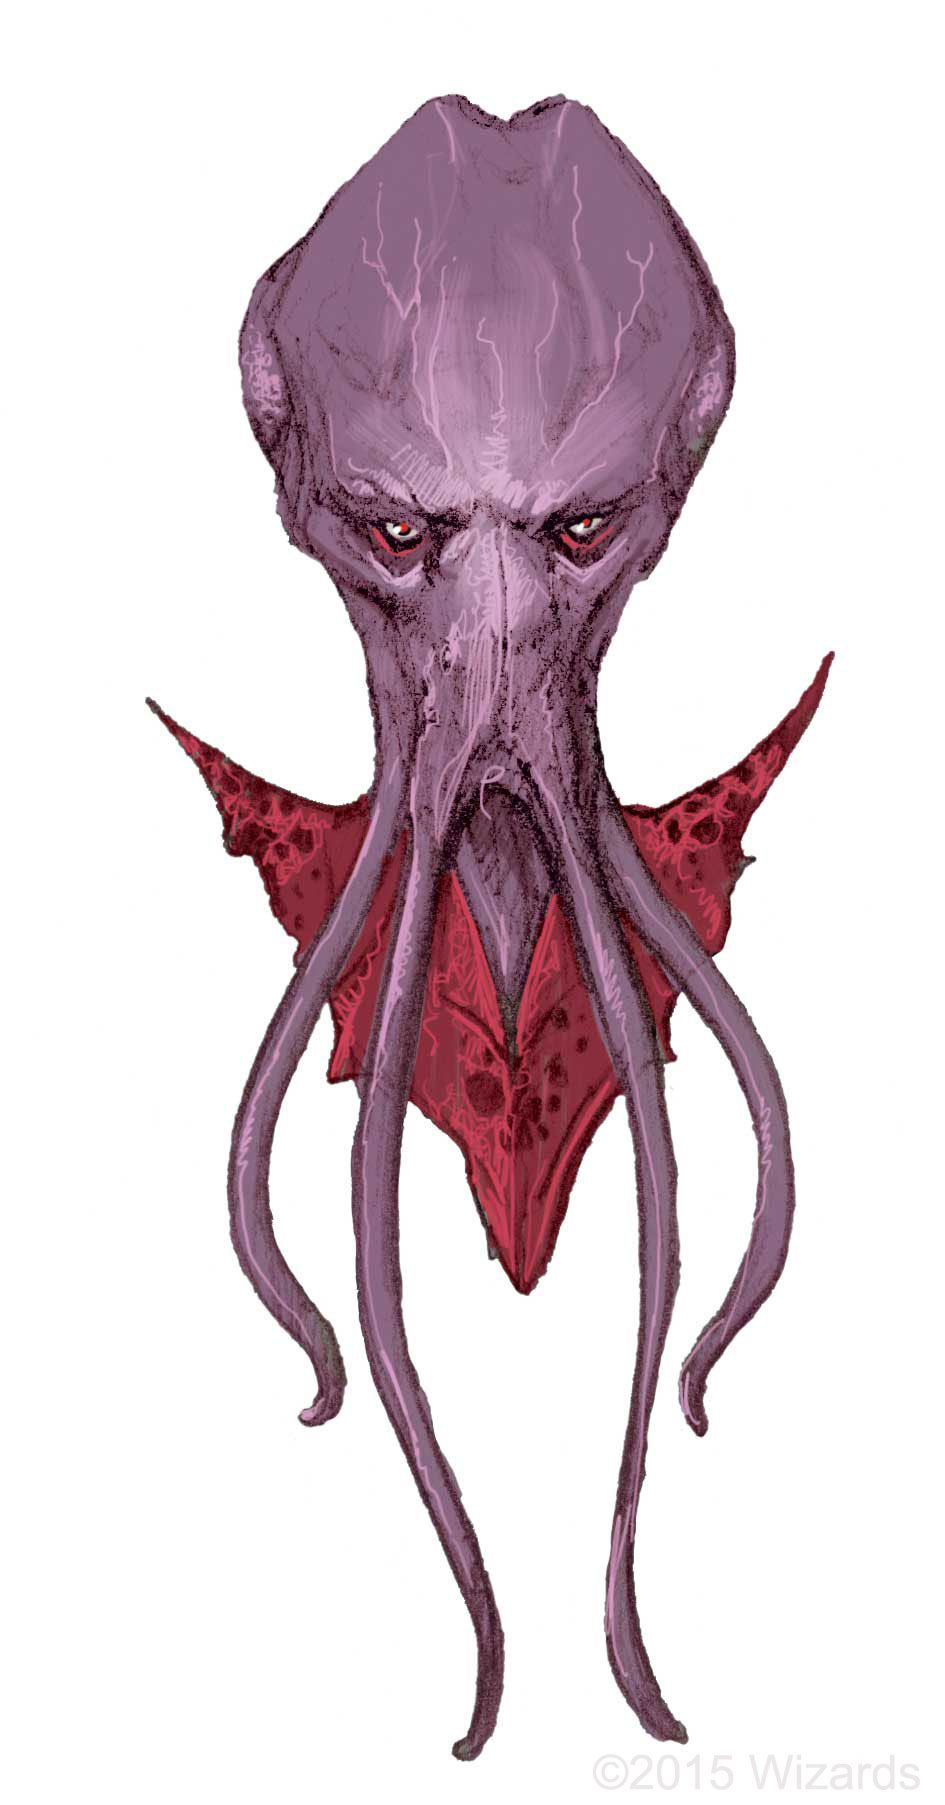 Out of the Abyss: D&D's next campaign goes deep into the Underdark